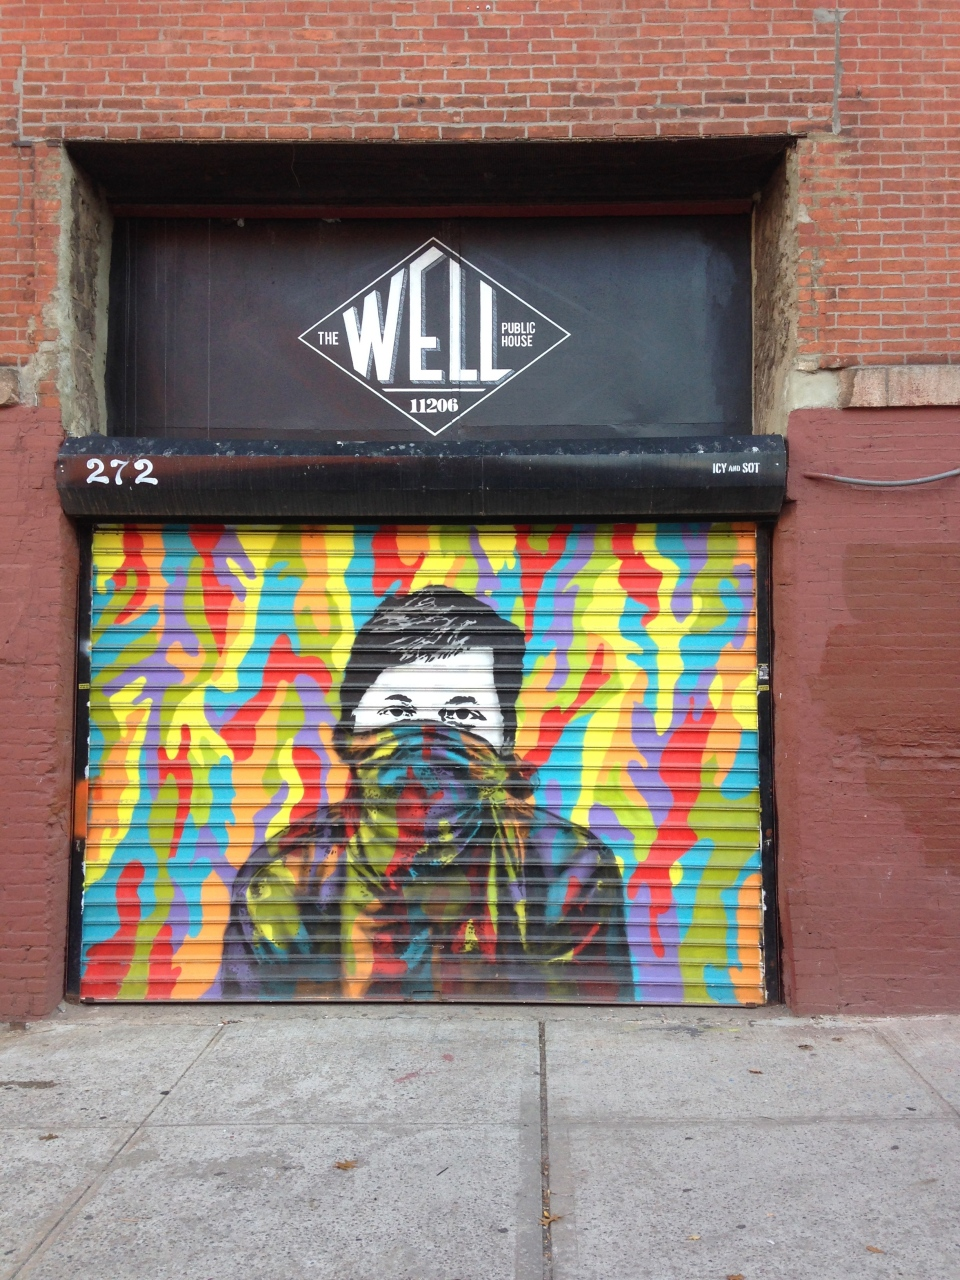 Icy and Sot in Brooklyn. October 2014.